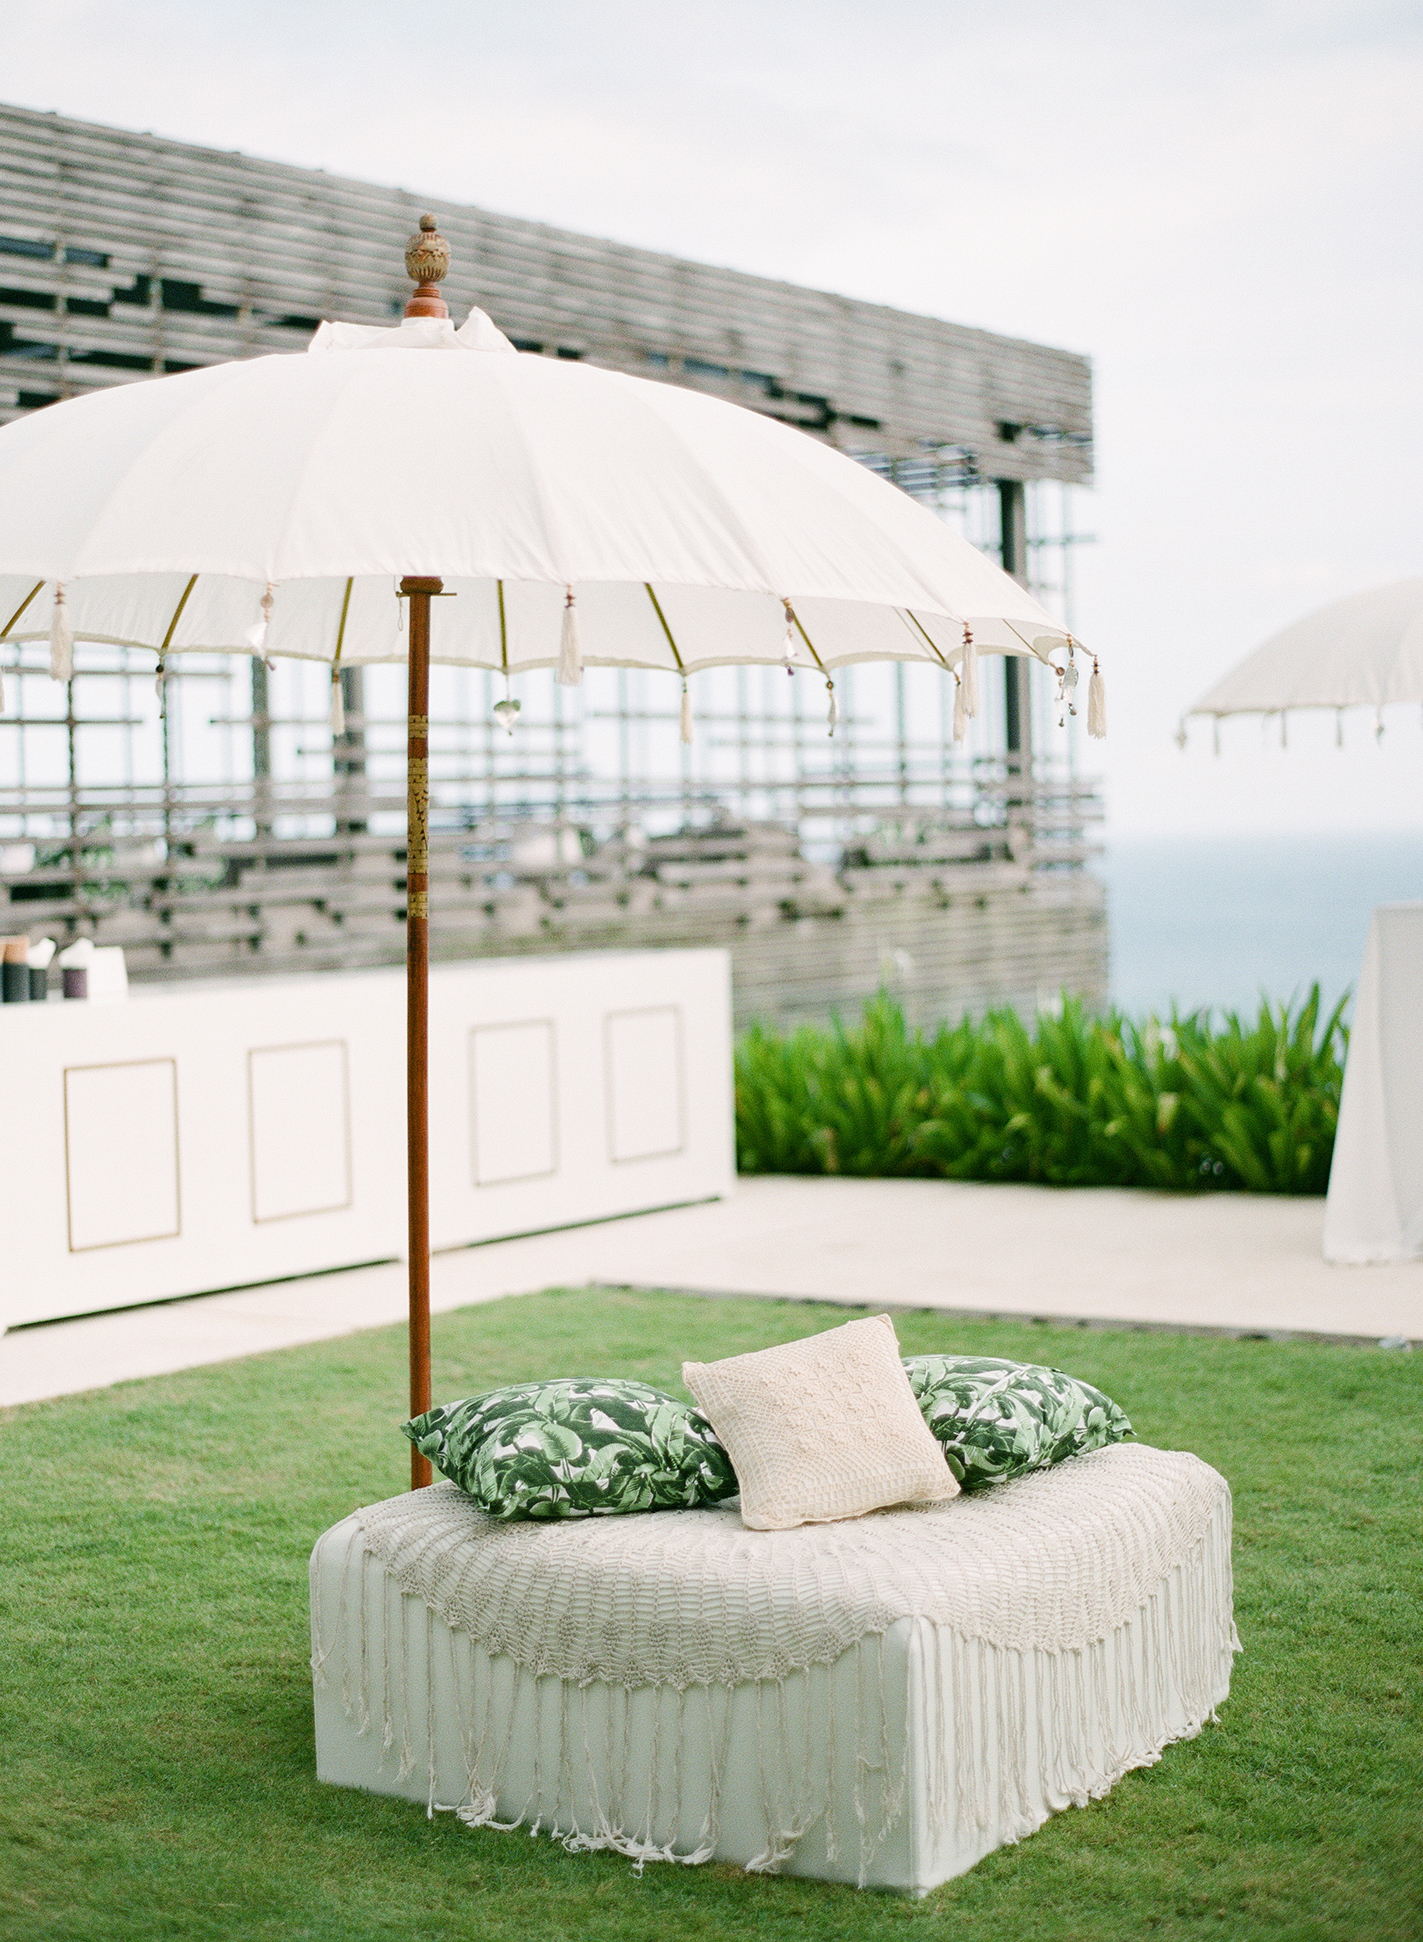 wedding lounge umbrella over white chair